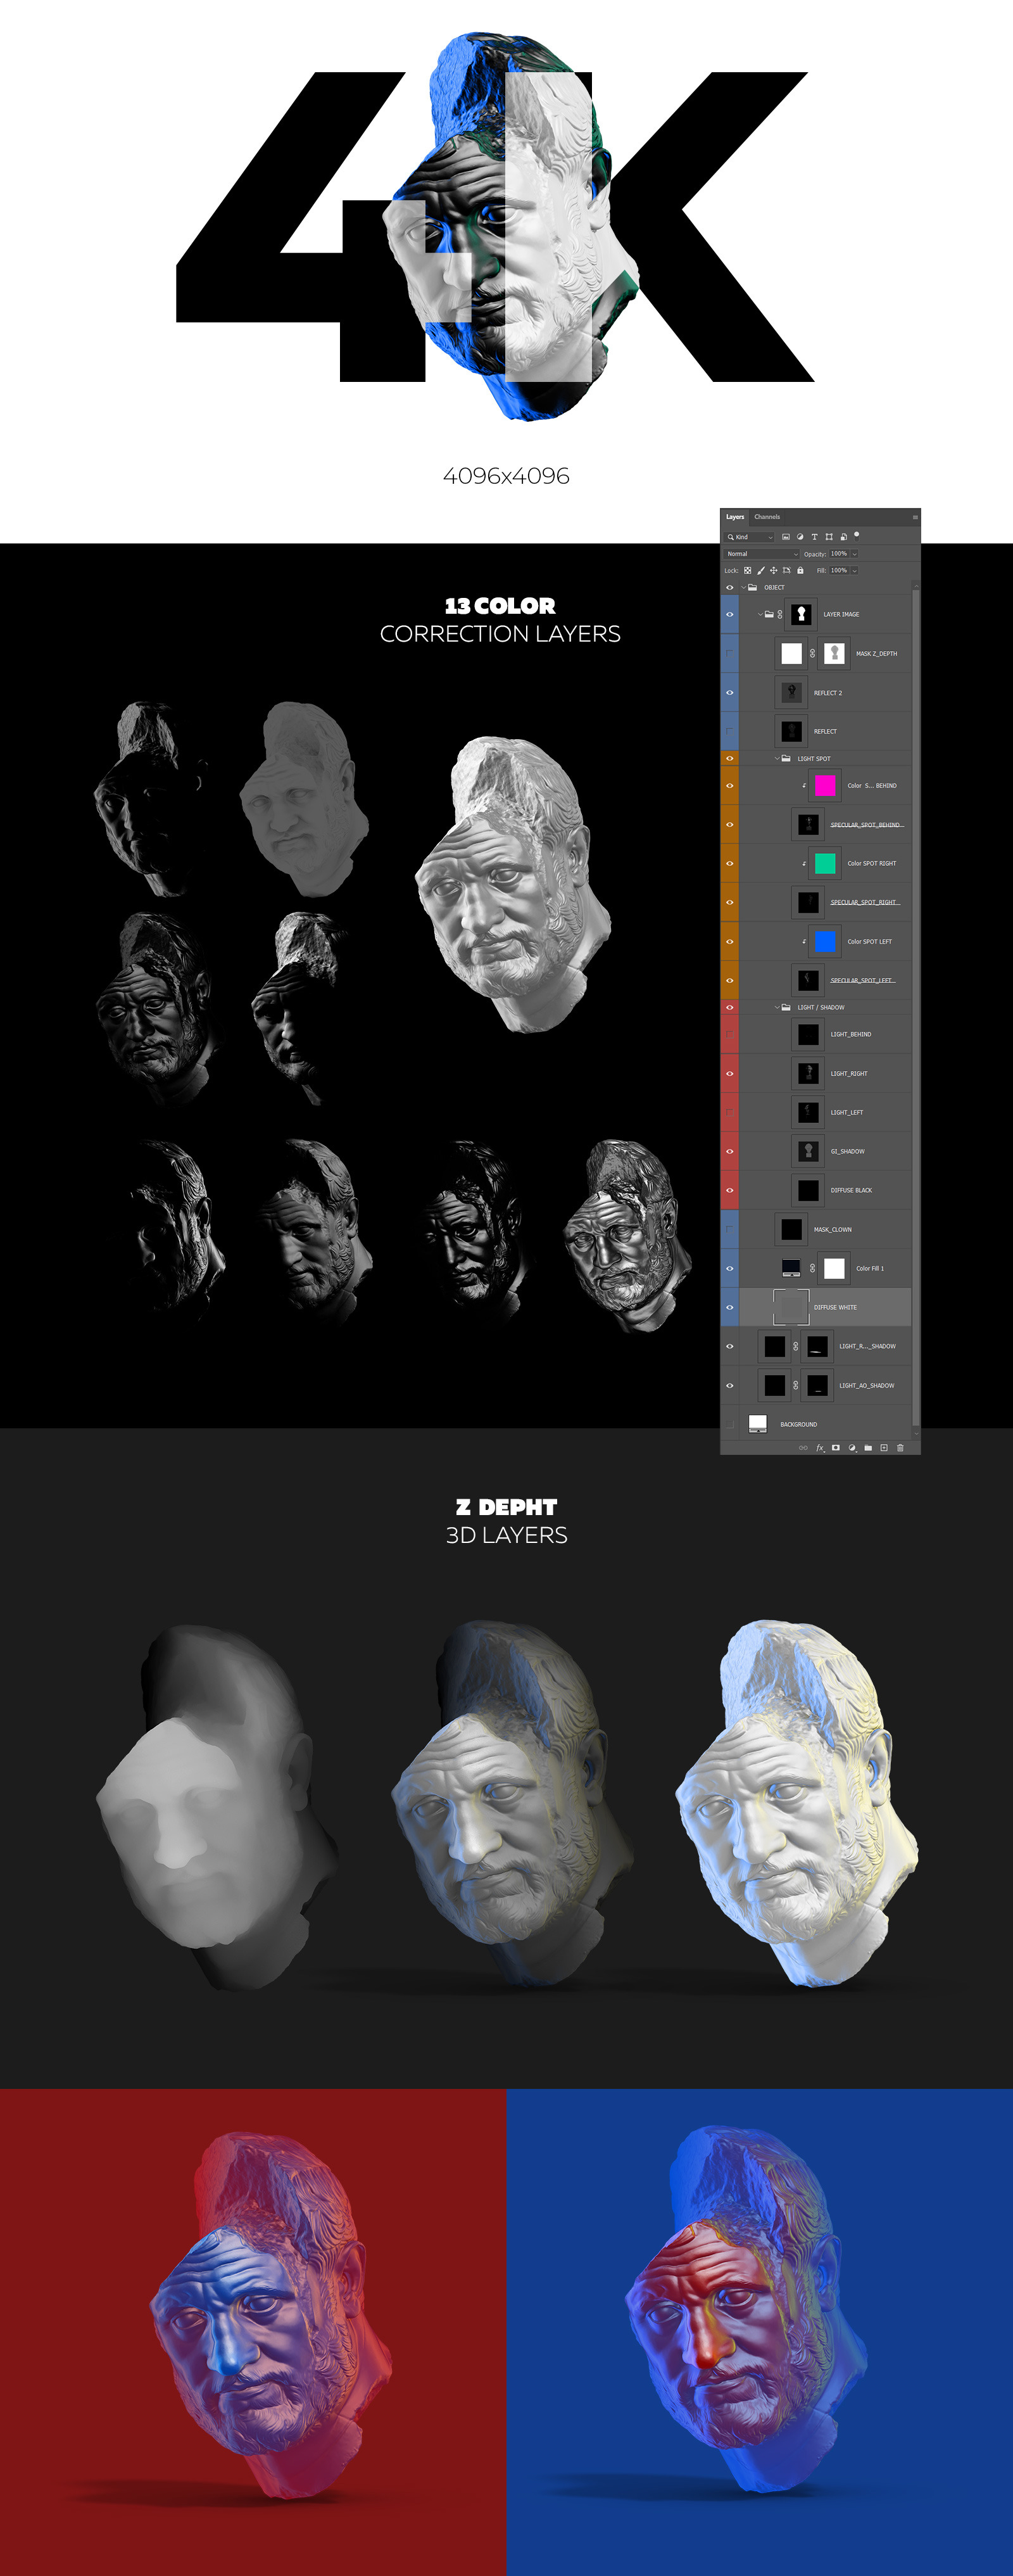 Collection of 5 Sculptures Busts #3, for branding and design of your product